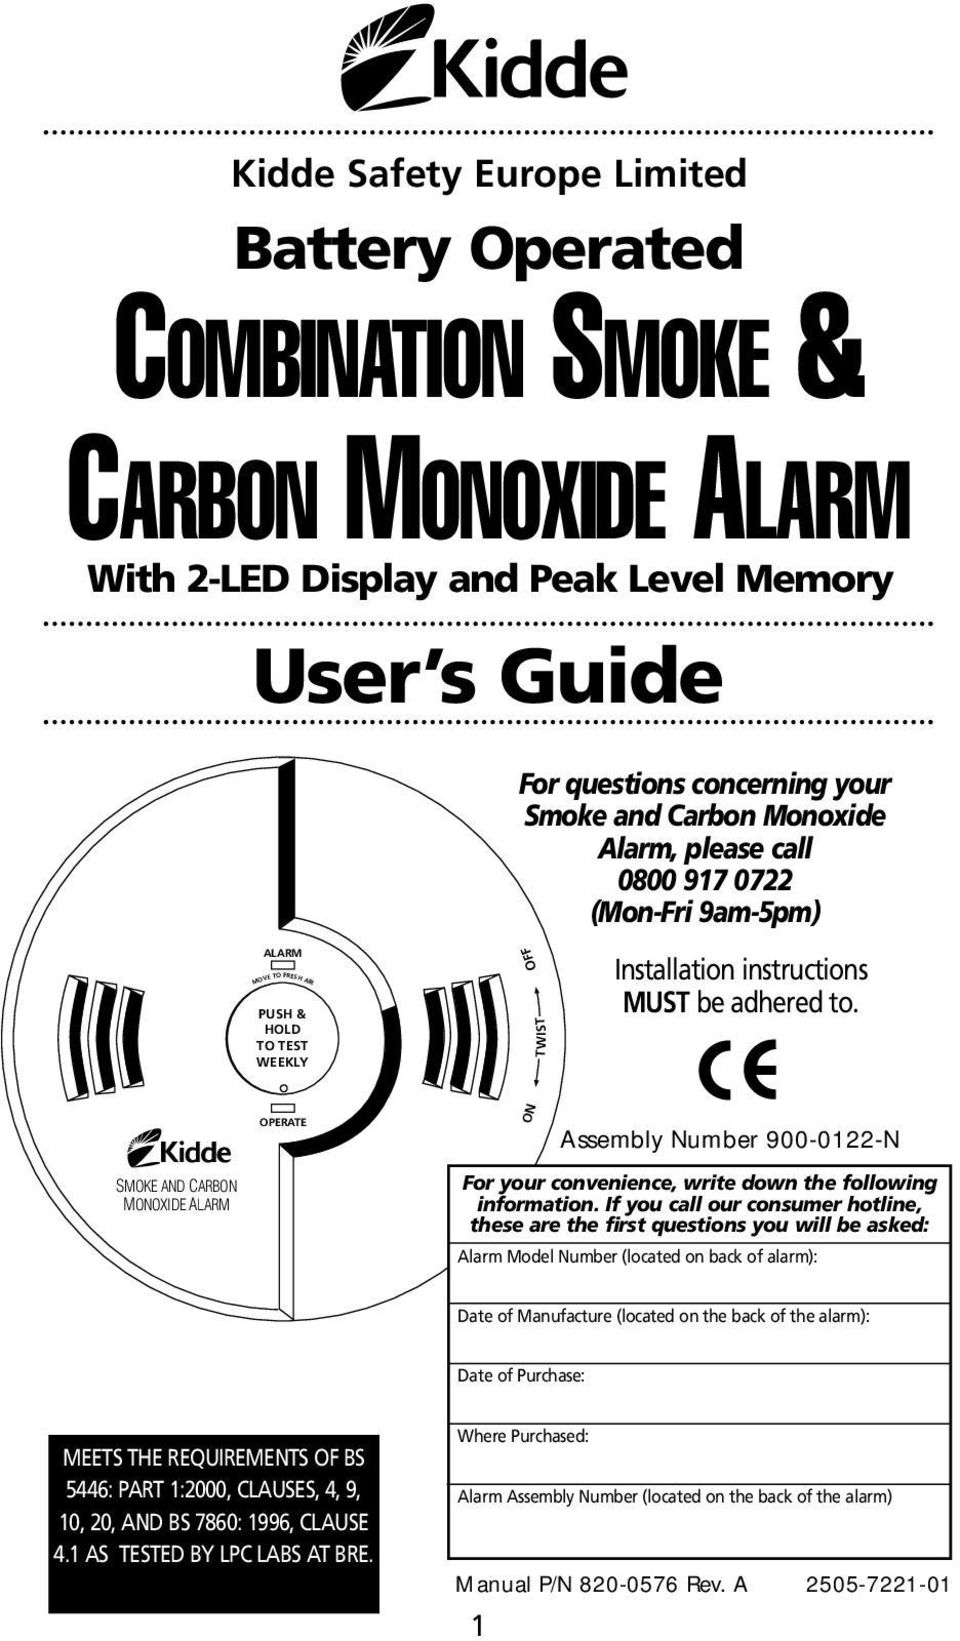 SMOKE AND CARBON MONOXIDE ALARM OPERATE ON Assembly Number 900-0122-N For your convenience, write down the following information.